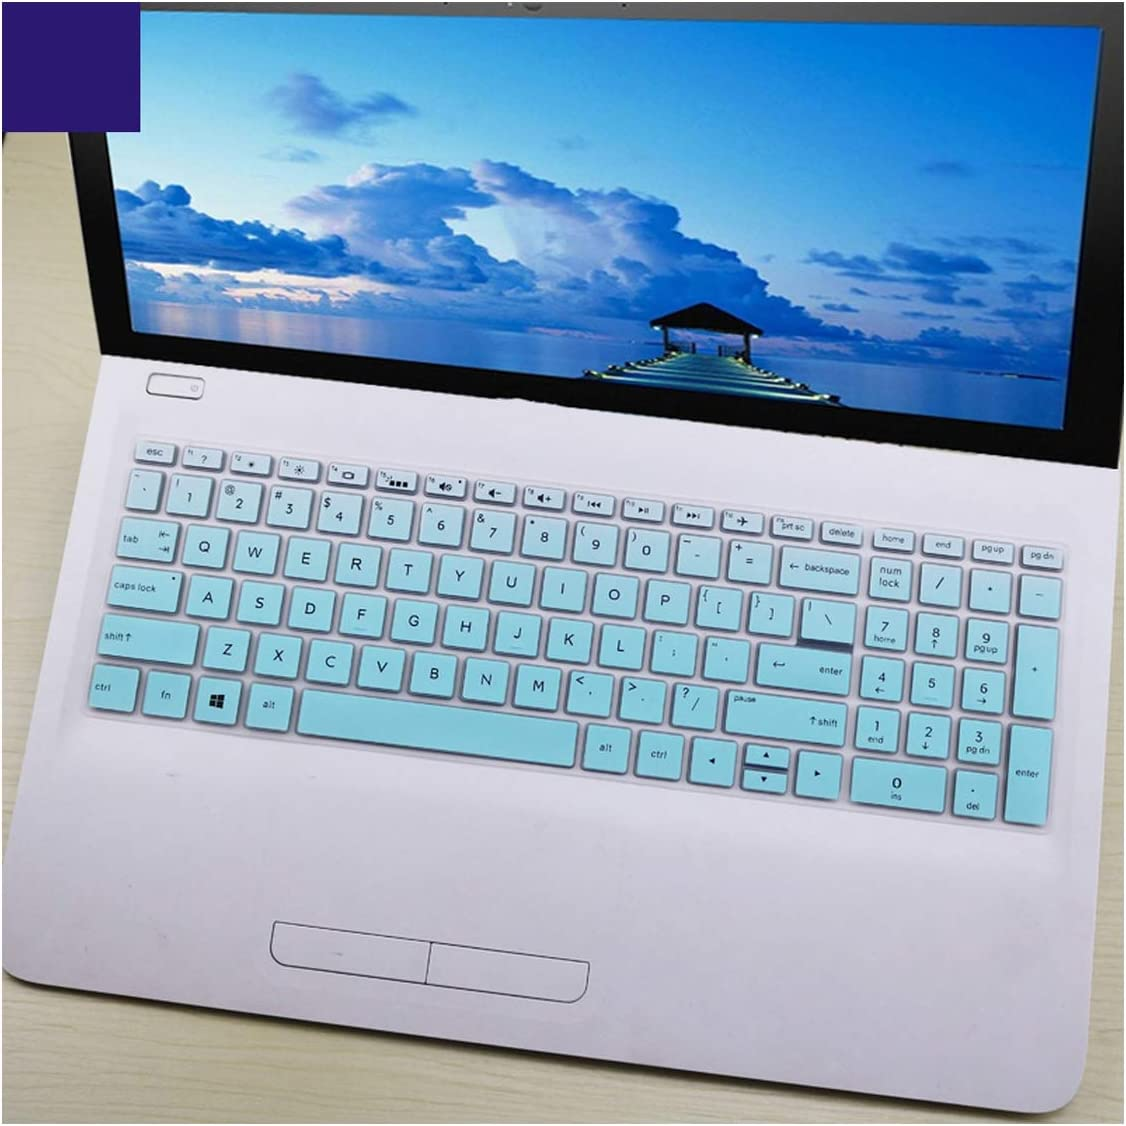 15.6 Inch Laptop Keyboard Cover Protector for Hp 250 255 G6 Notebook Pc-in Keyboard Covers from Computer /& Office,Fademint